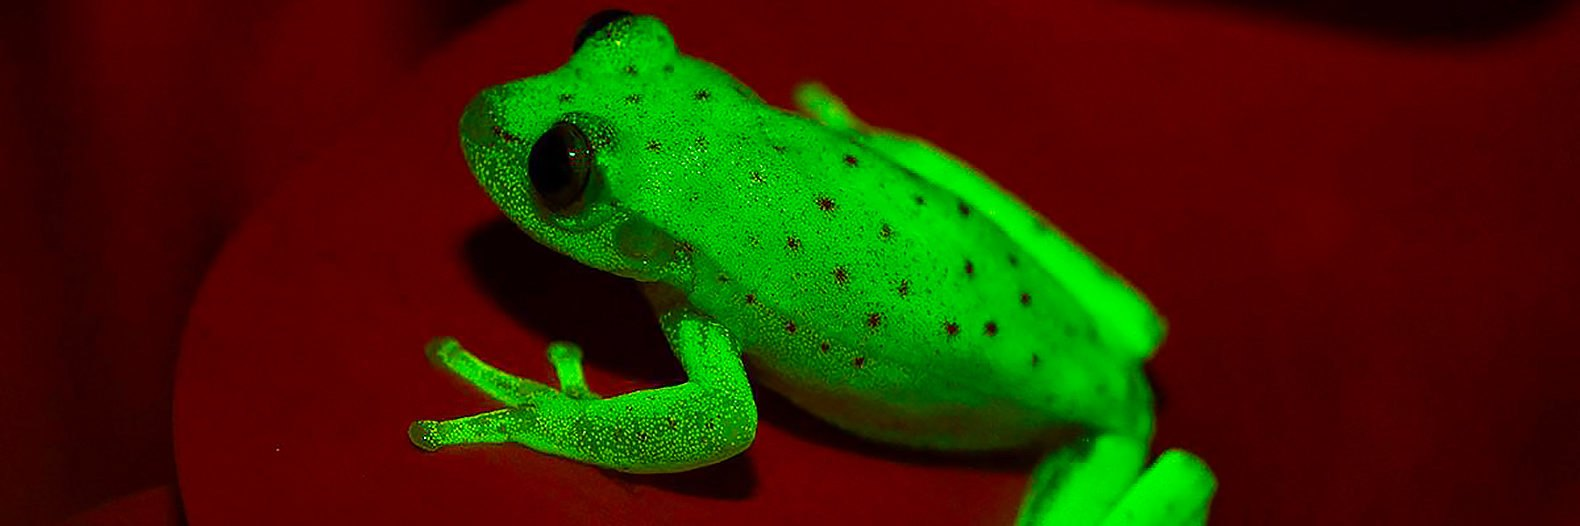 First fluorescent frog in the world found in South America ...